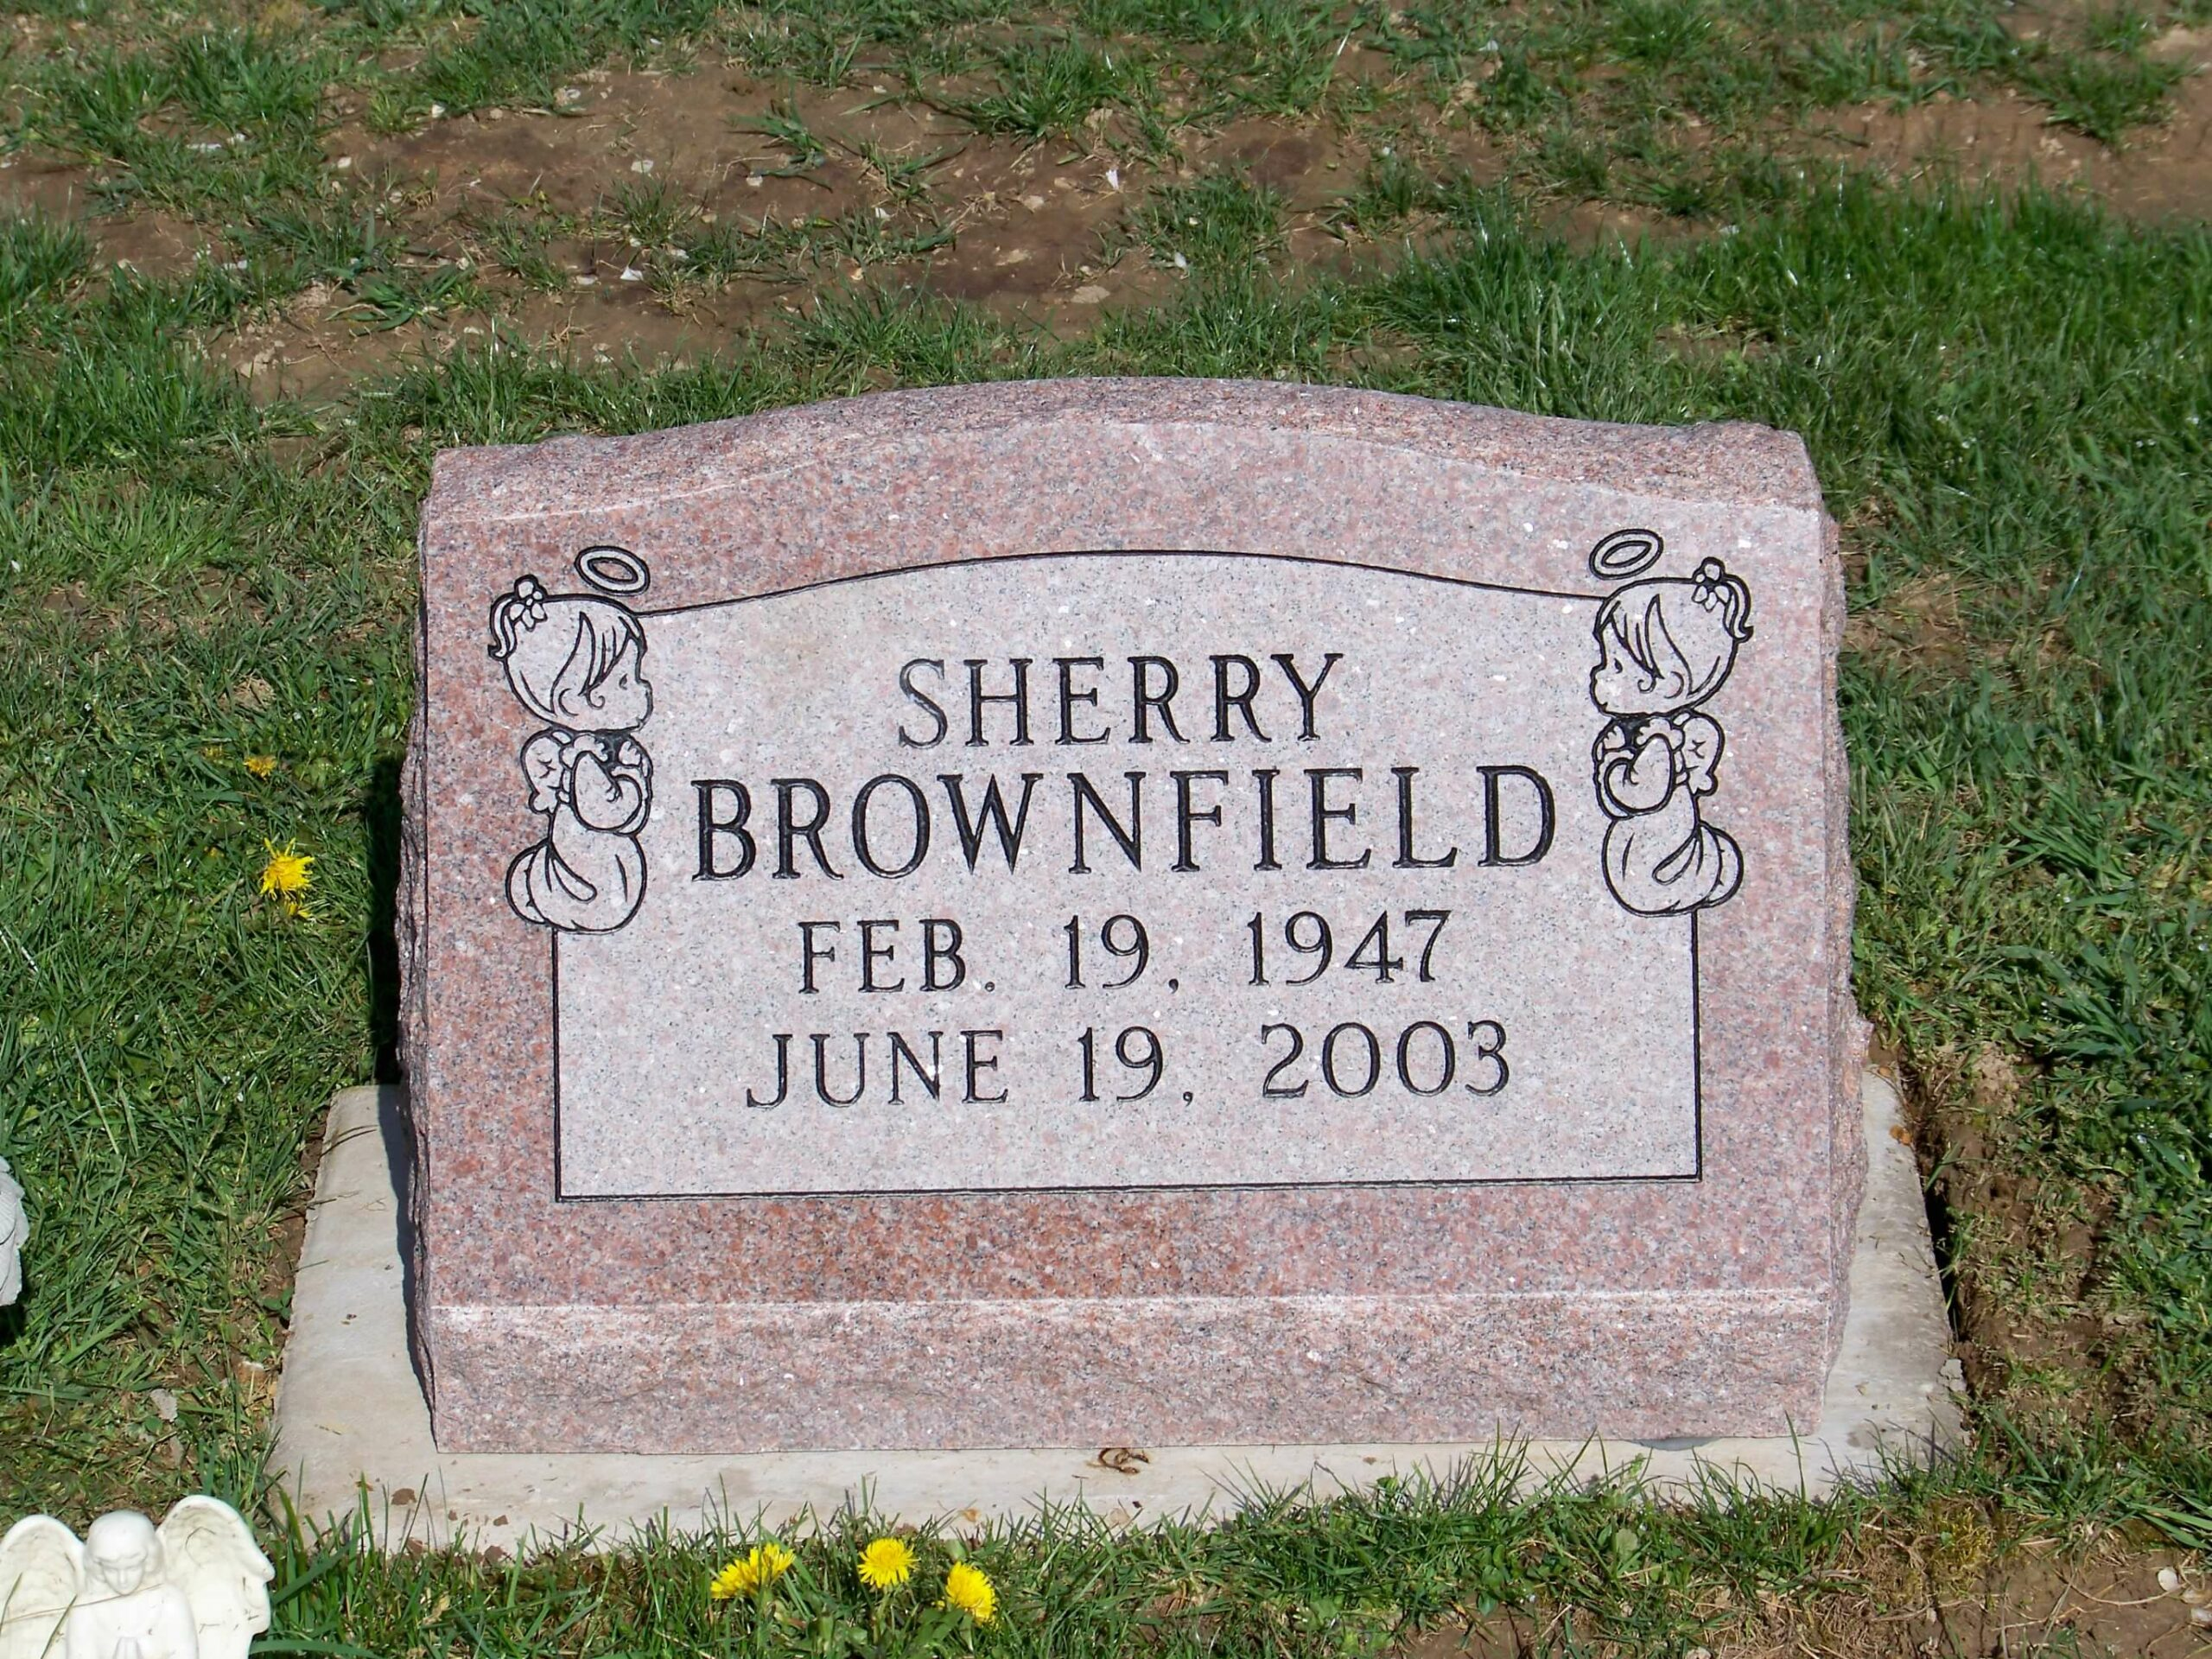 Brownfiled, Sherry